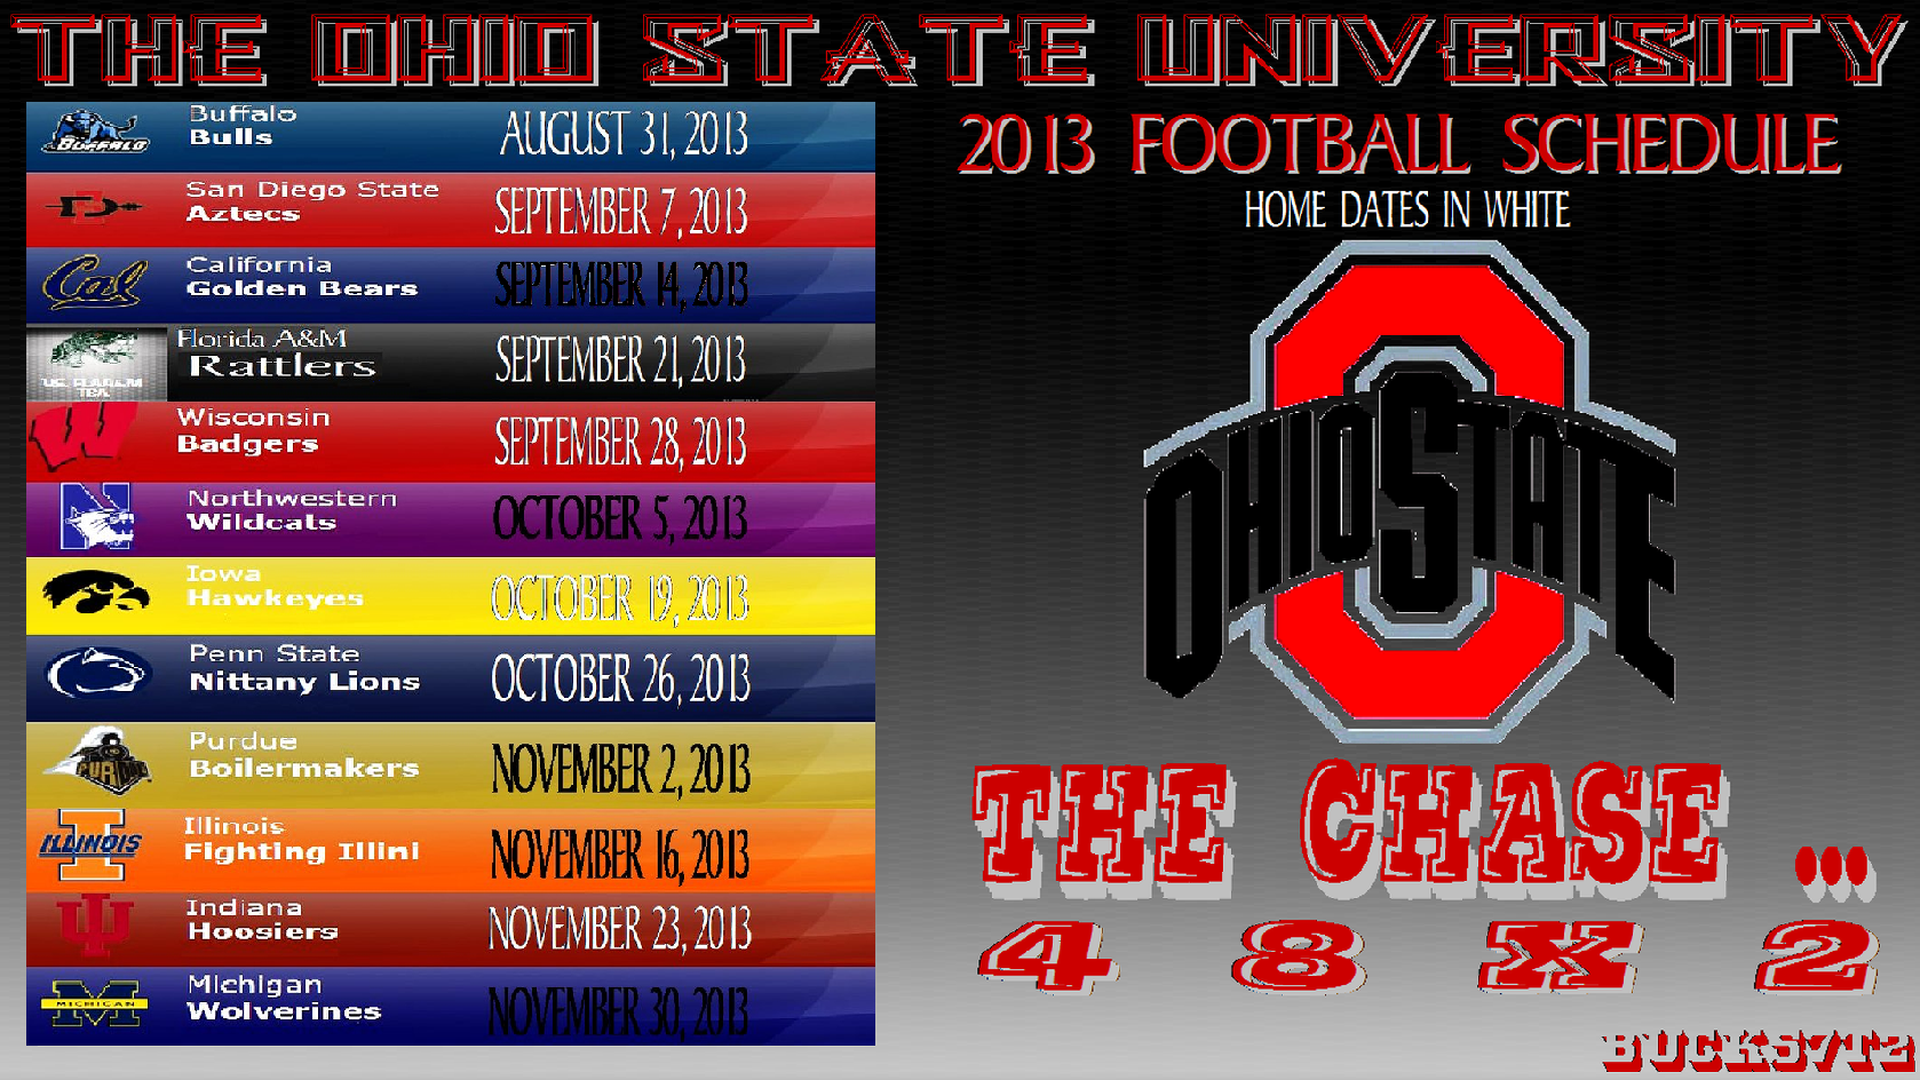 Ohio State Football Schedule Latest News Images And Photos CrypticImages